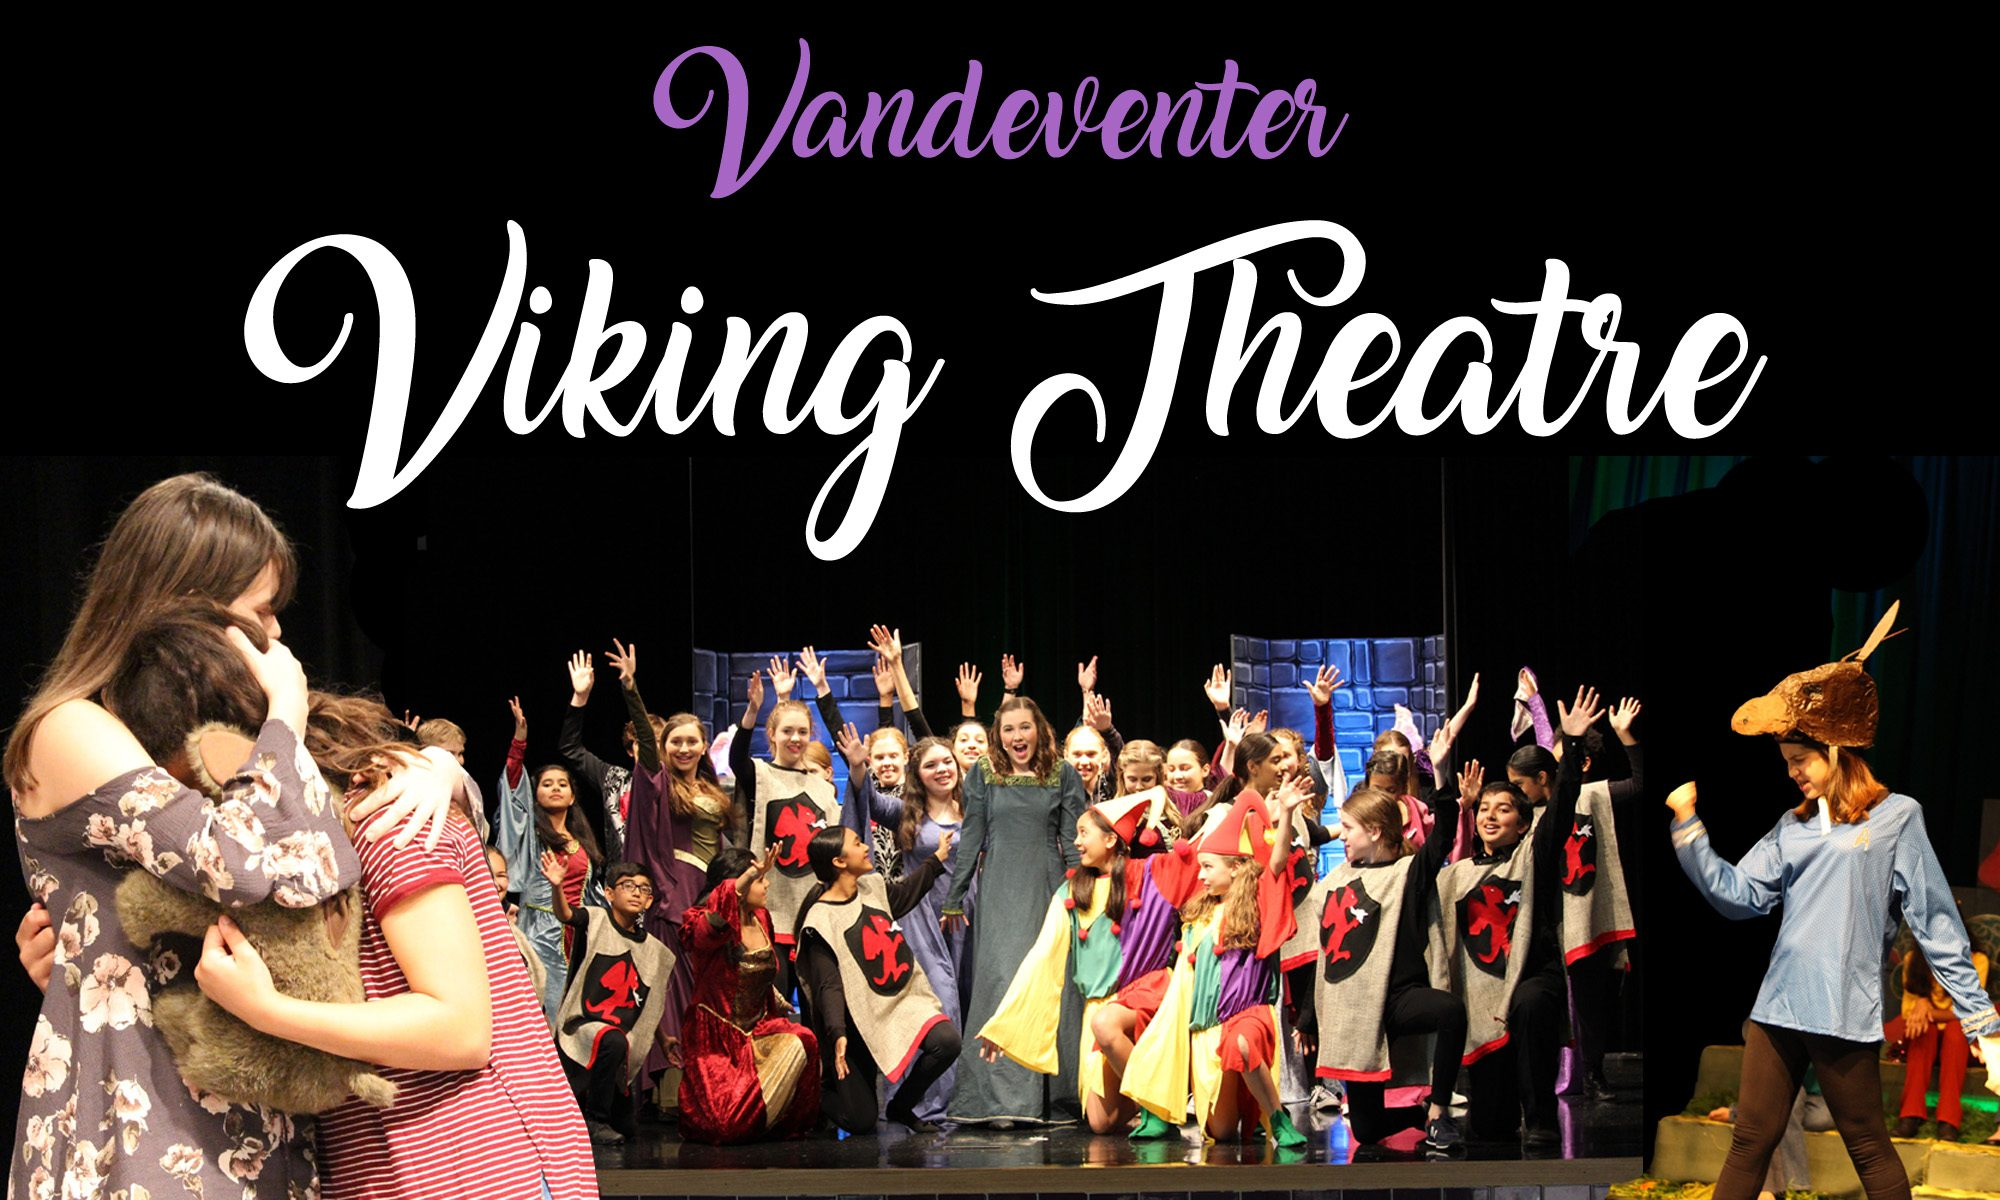 Vandeventer MS Viking Theatre